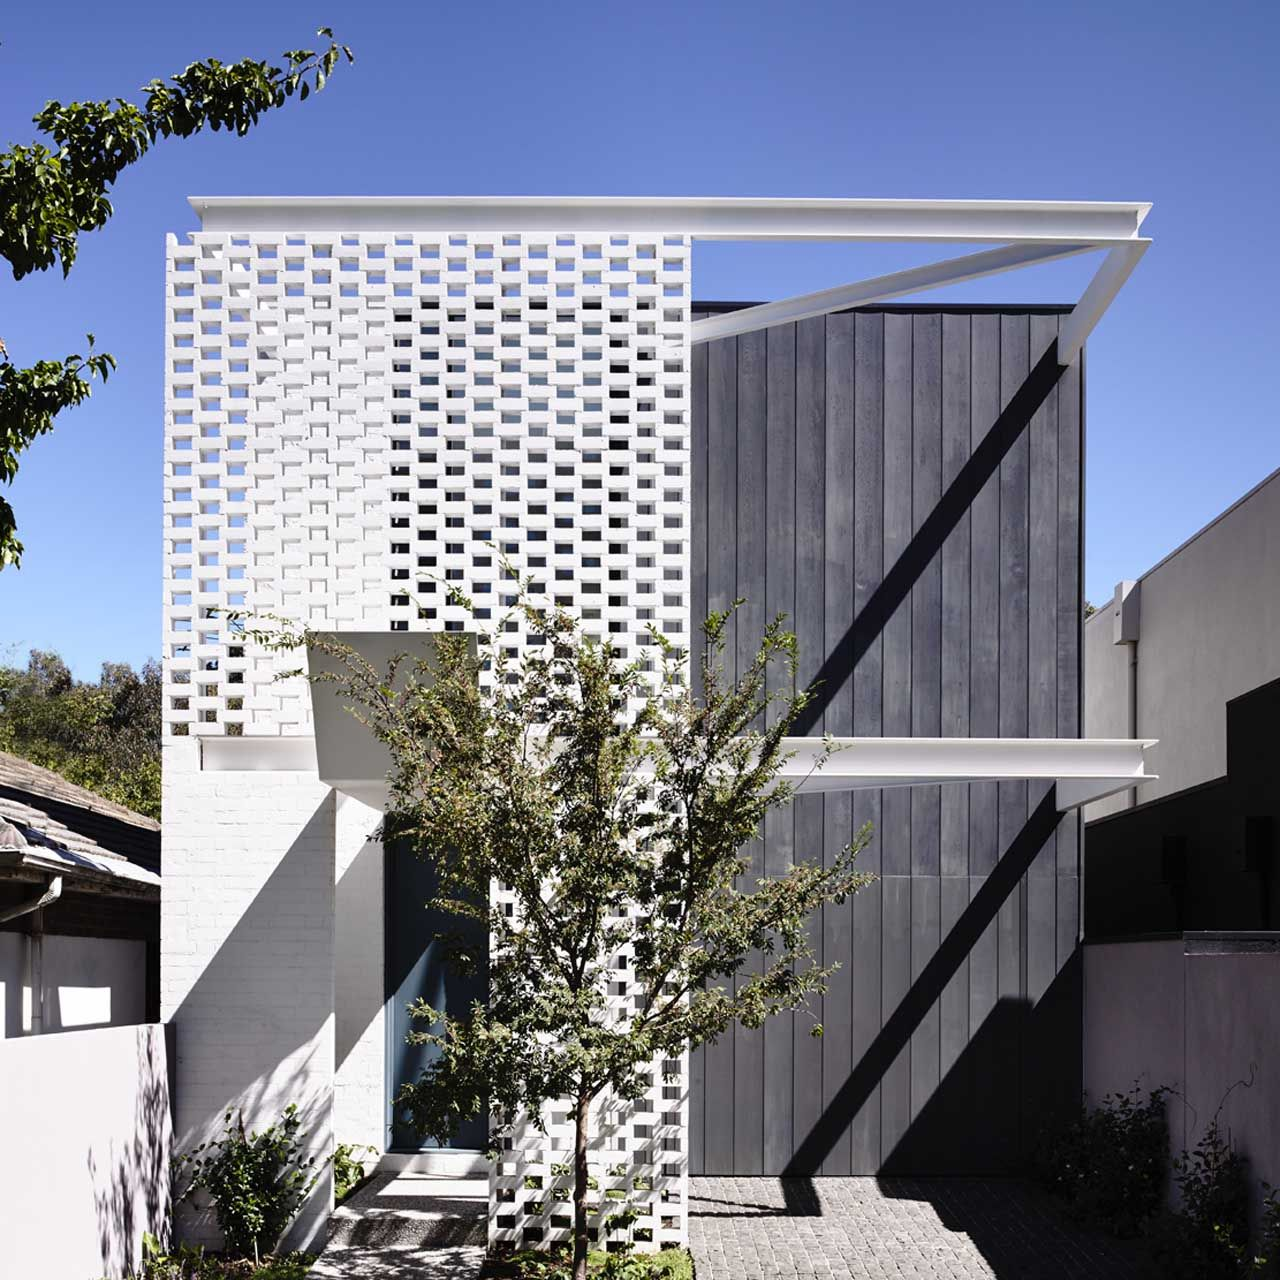 House with a perforated brick screen wall b v for Perforated brick wall